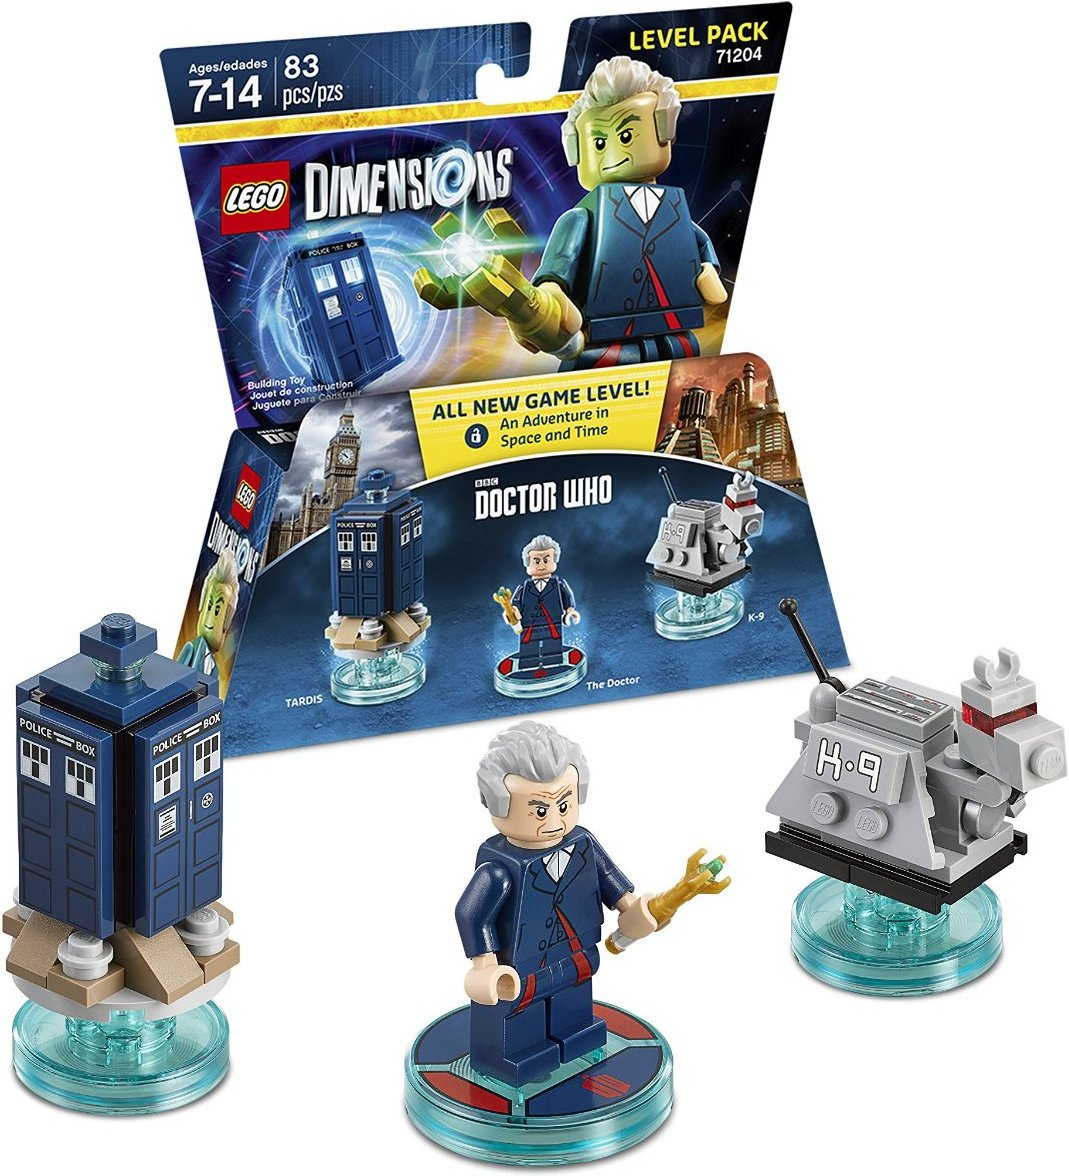 71204 Doctor Who Level Pack Brickipedia Fandom Powered